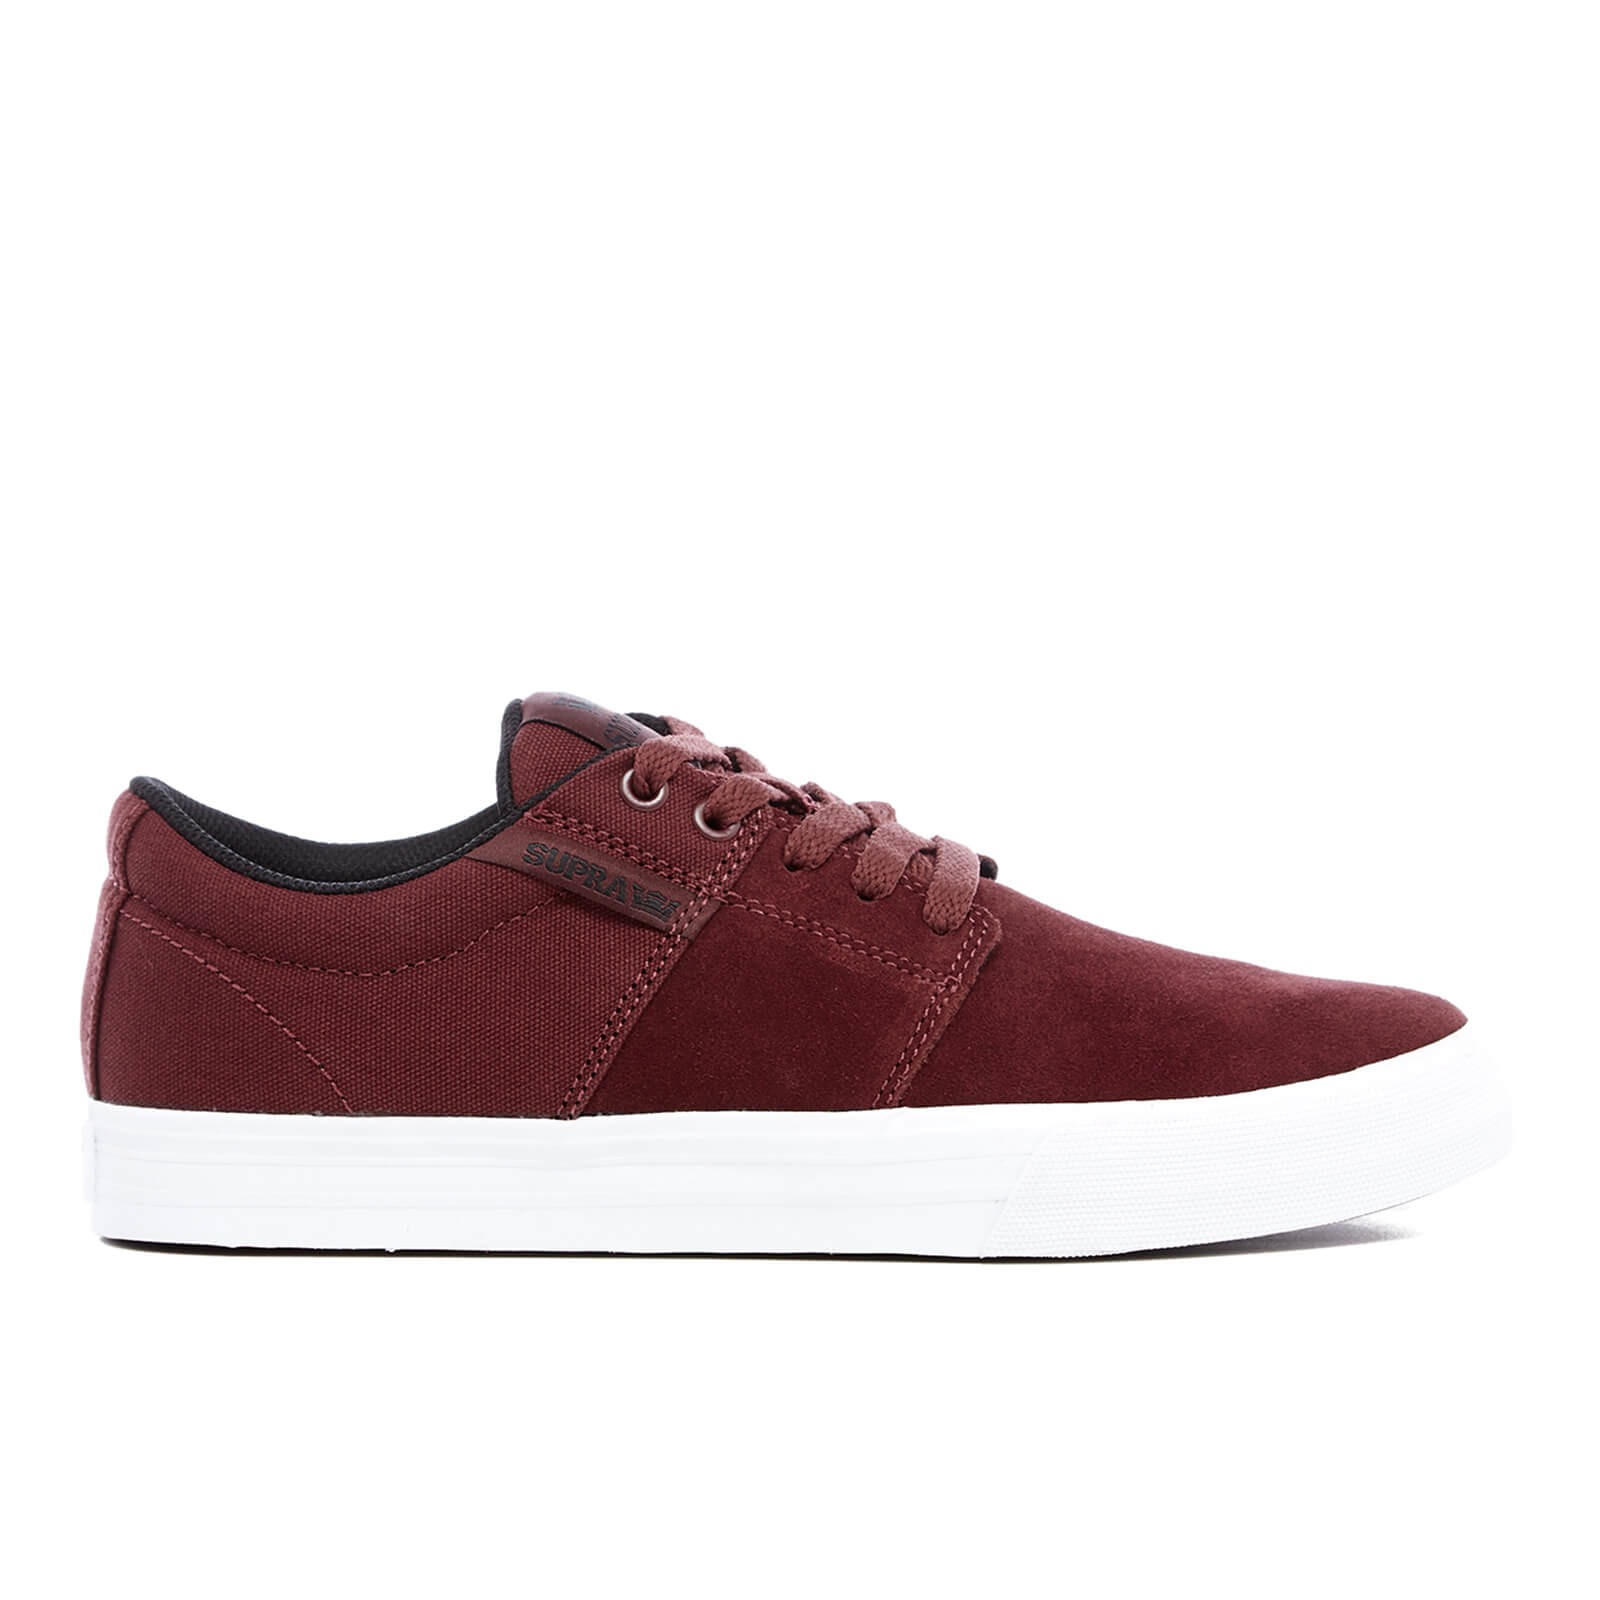 560d4412ea32 Supra Men s Stacks II Vulc Trainers - Burgundy White Mens Footwear ...